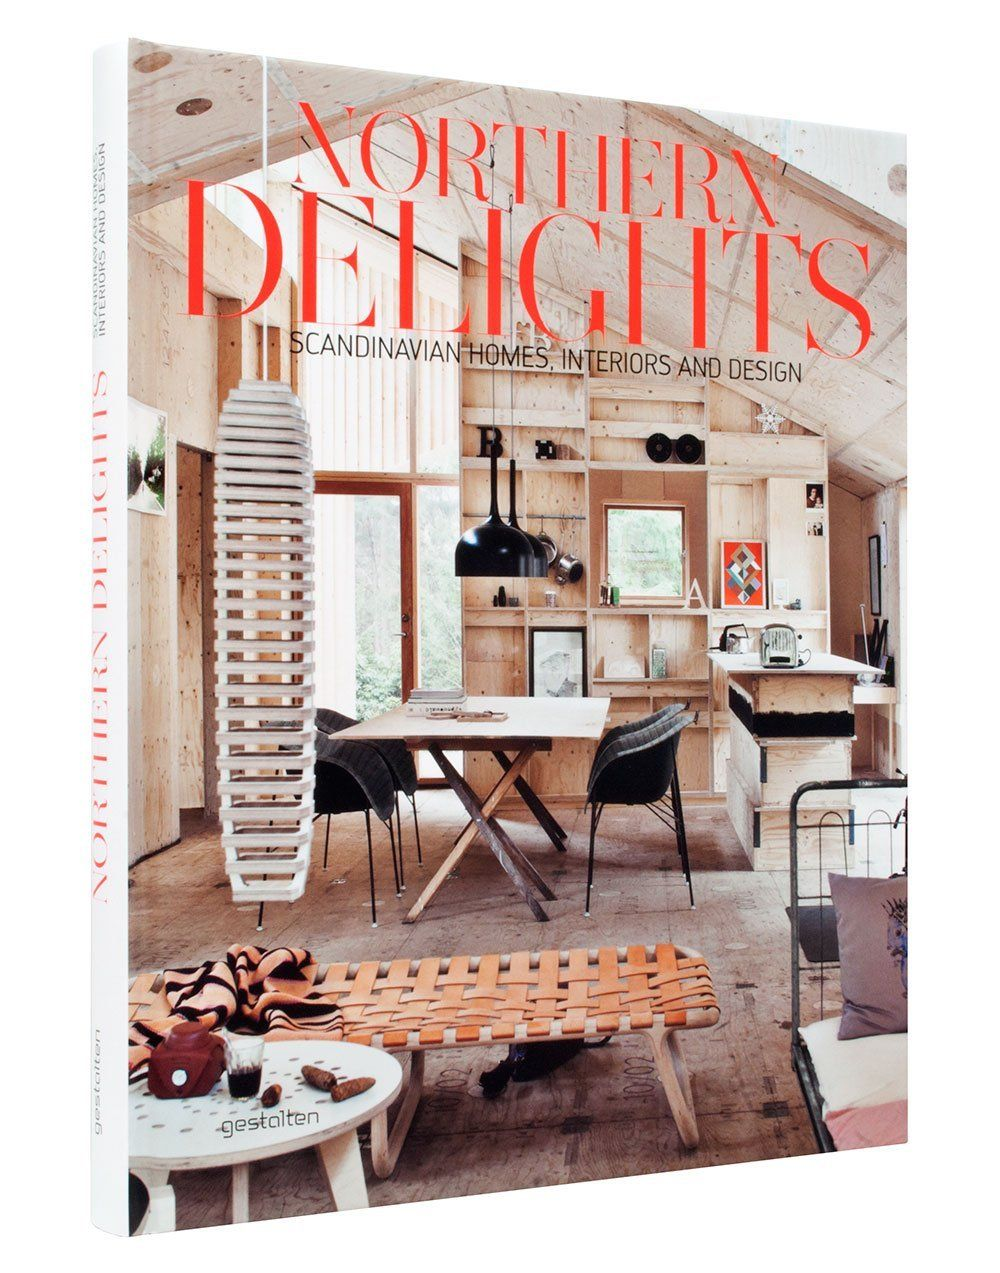 Fab New Interior Book Northern Delight Written By Emma Fexeus Of Emmasdesignblog And All About Scandinavian Home Interiors Scandinavian Home Interior Design